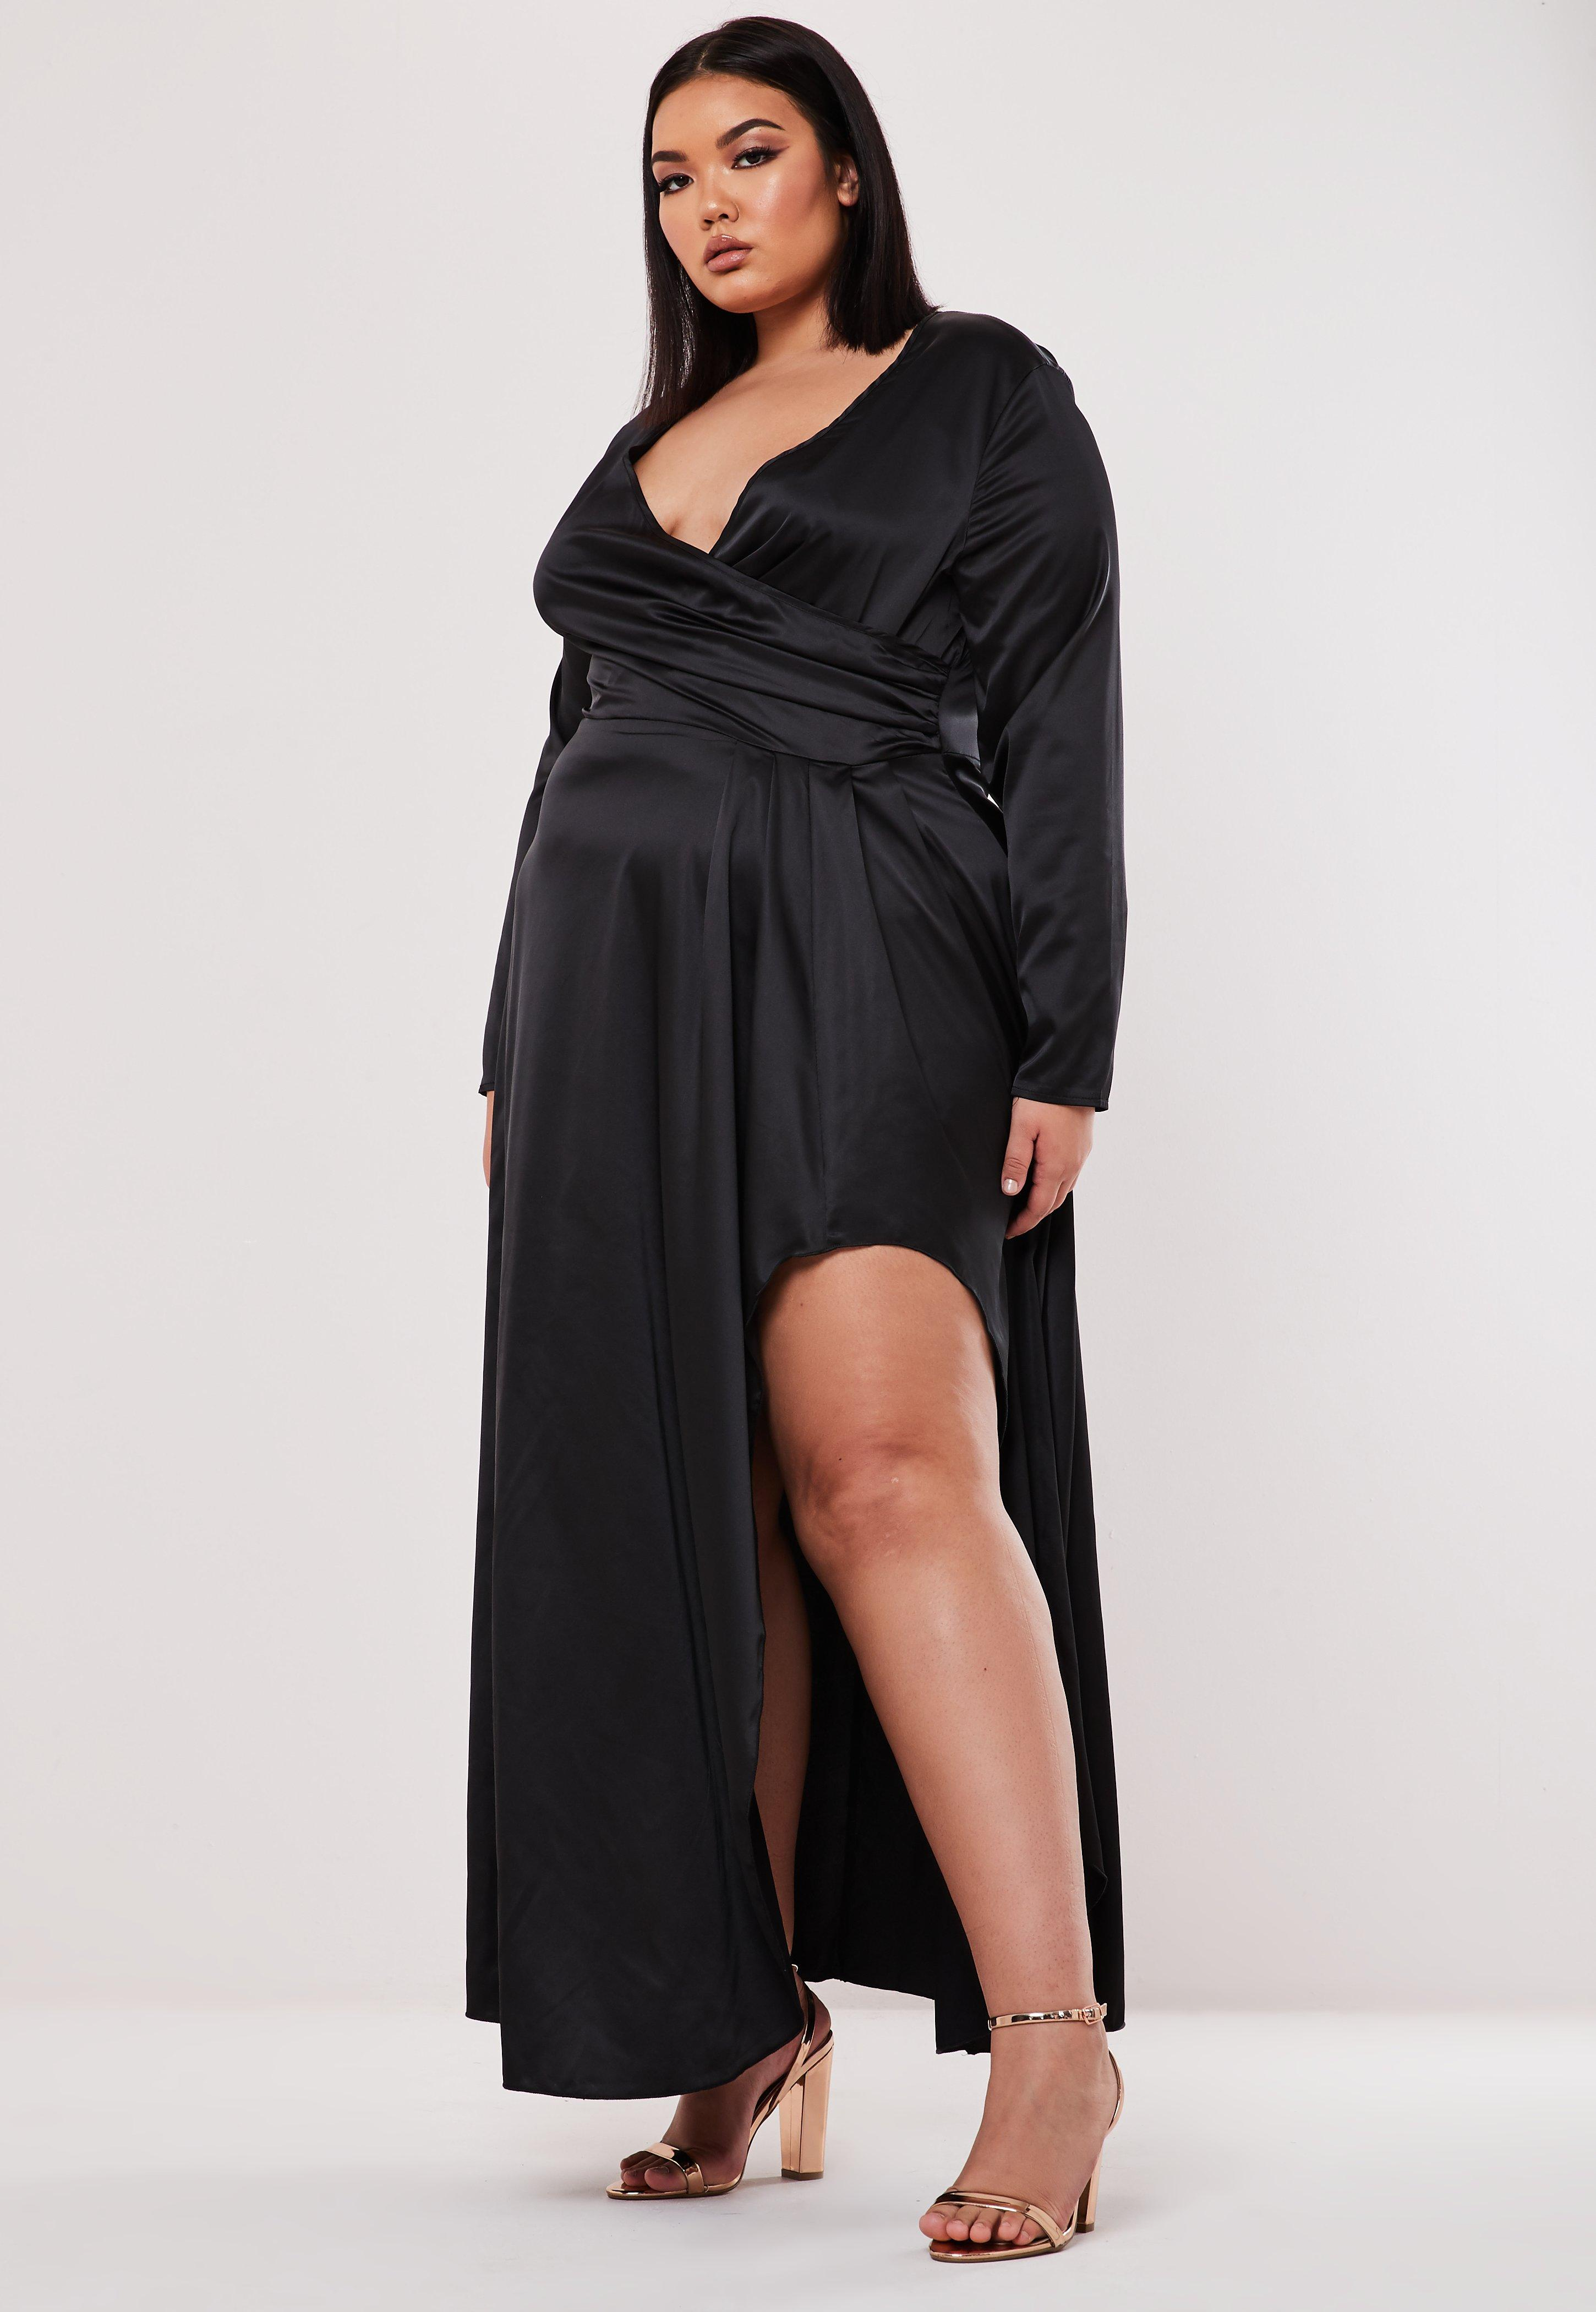 05fb03b4974c Plus Size Dresses UK | Women's Plus Size Dresses | Missguided